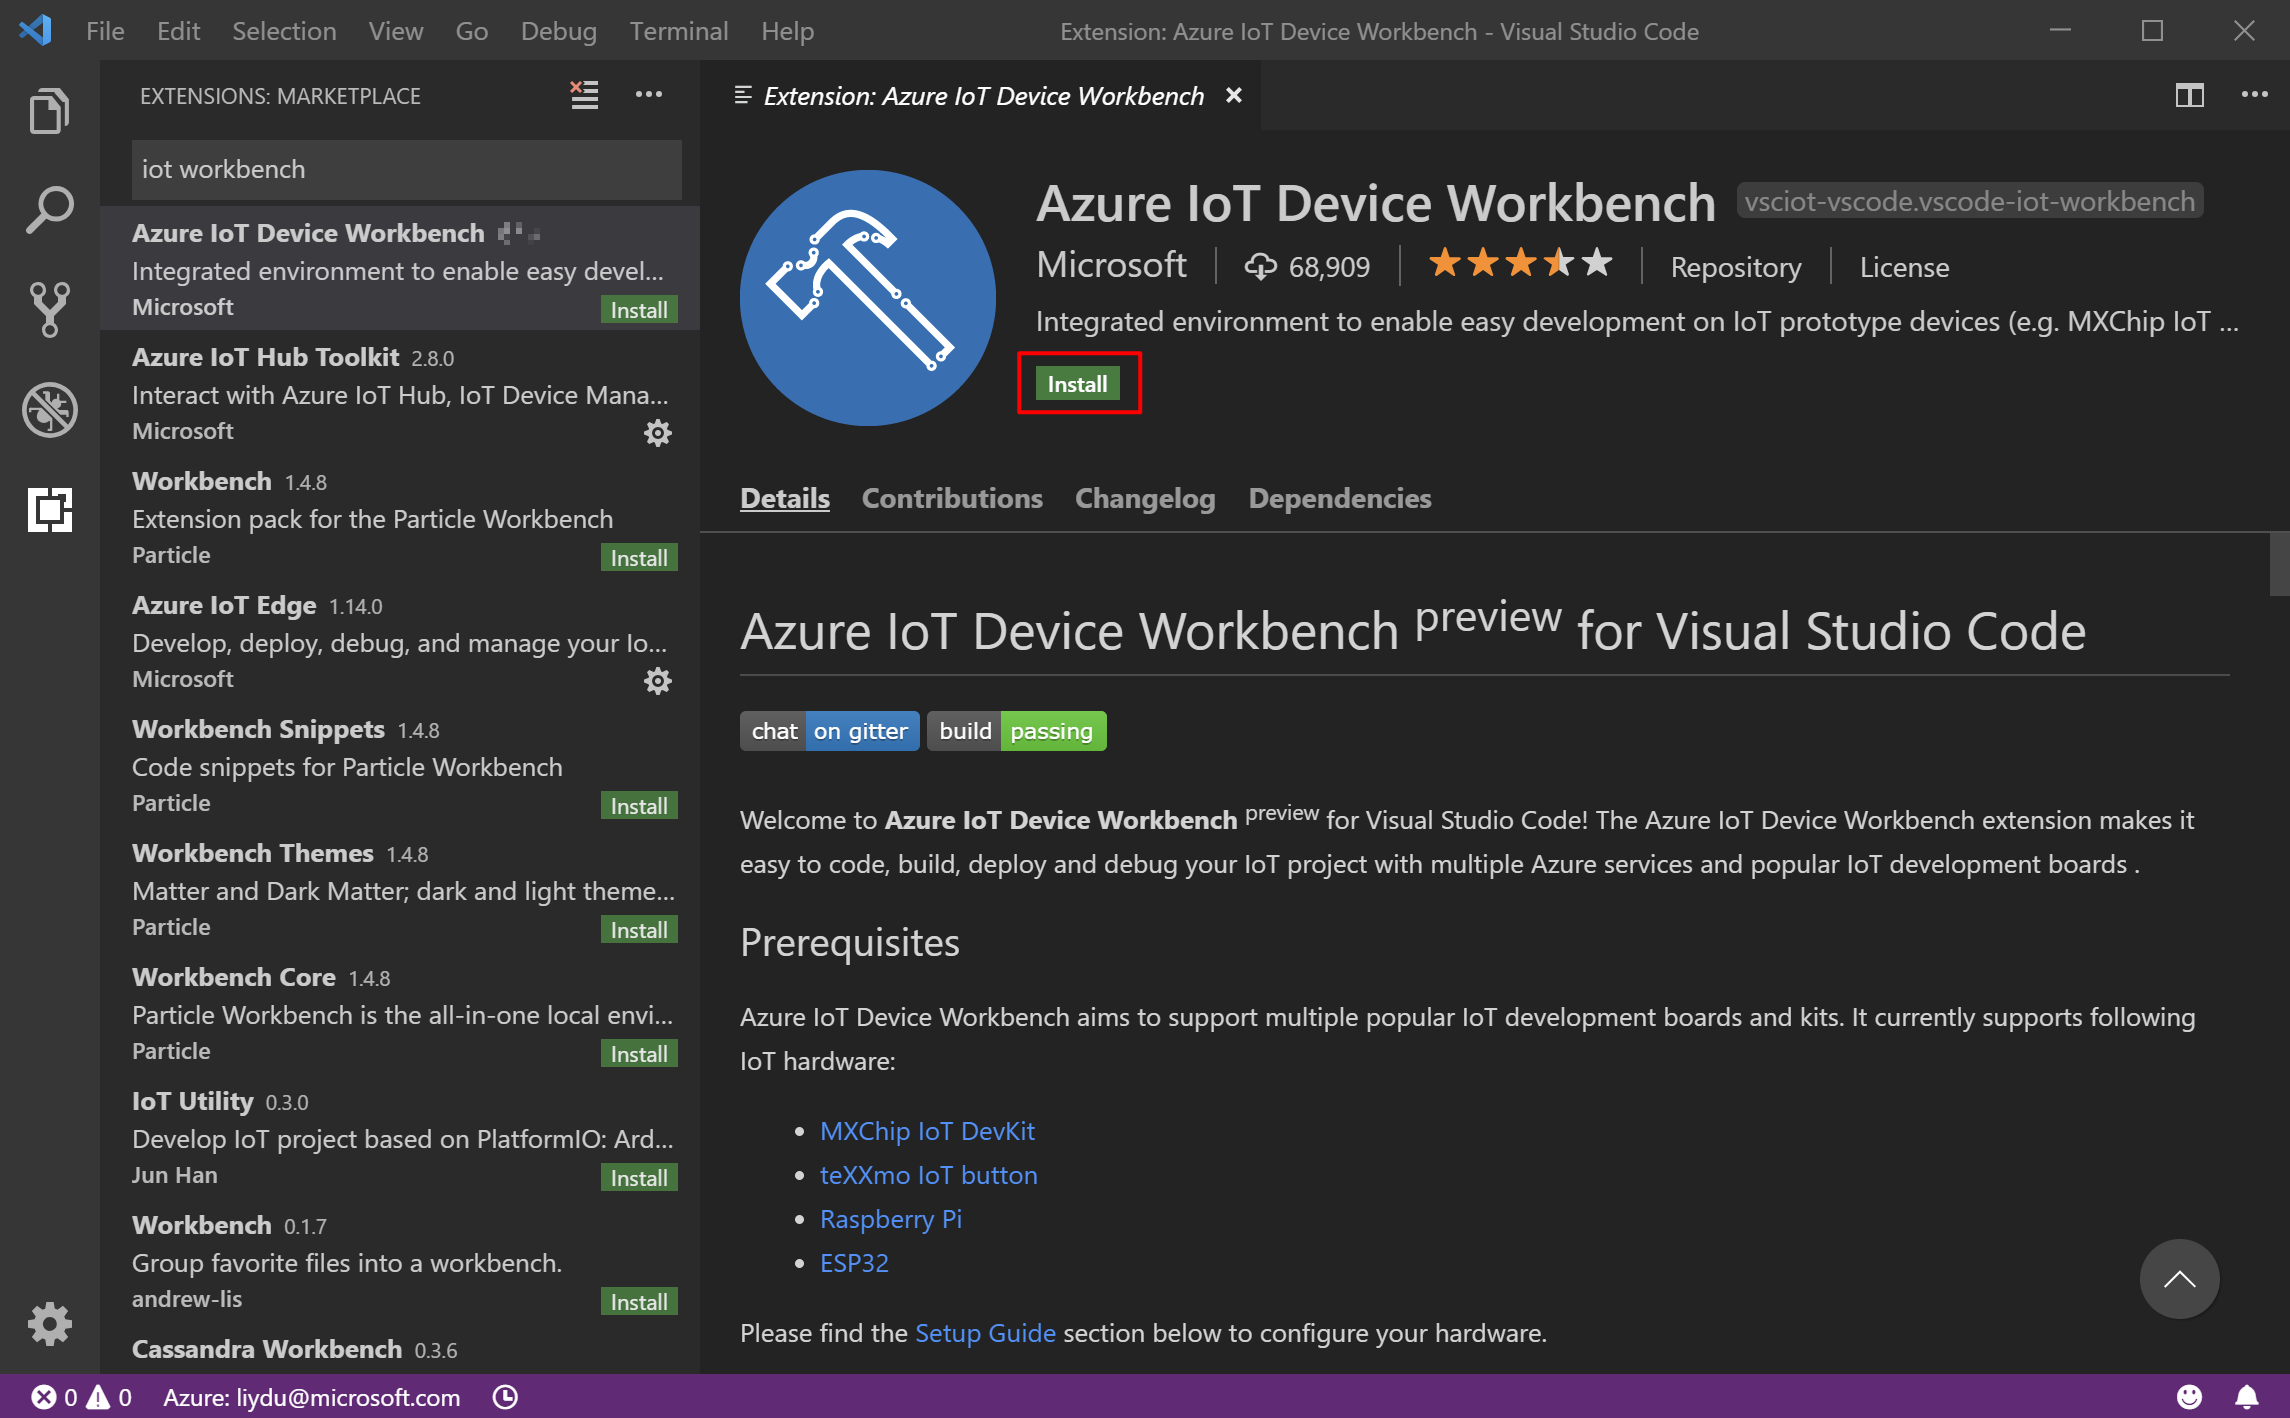 Azure IoT Device Workbench - Visual Studio Marketplace